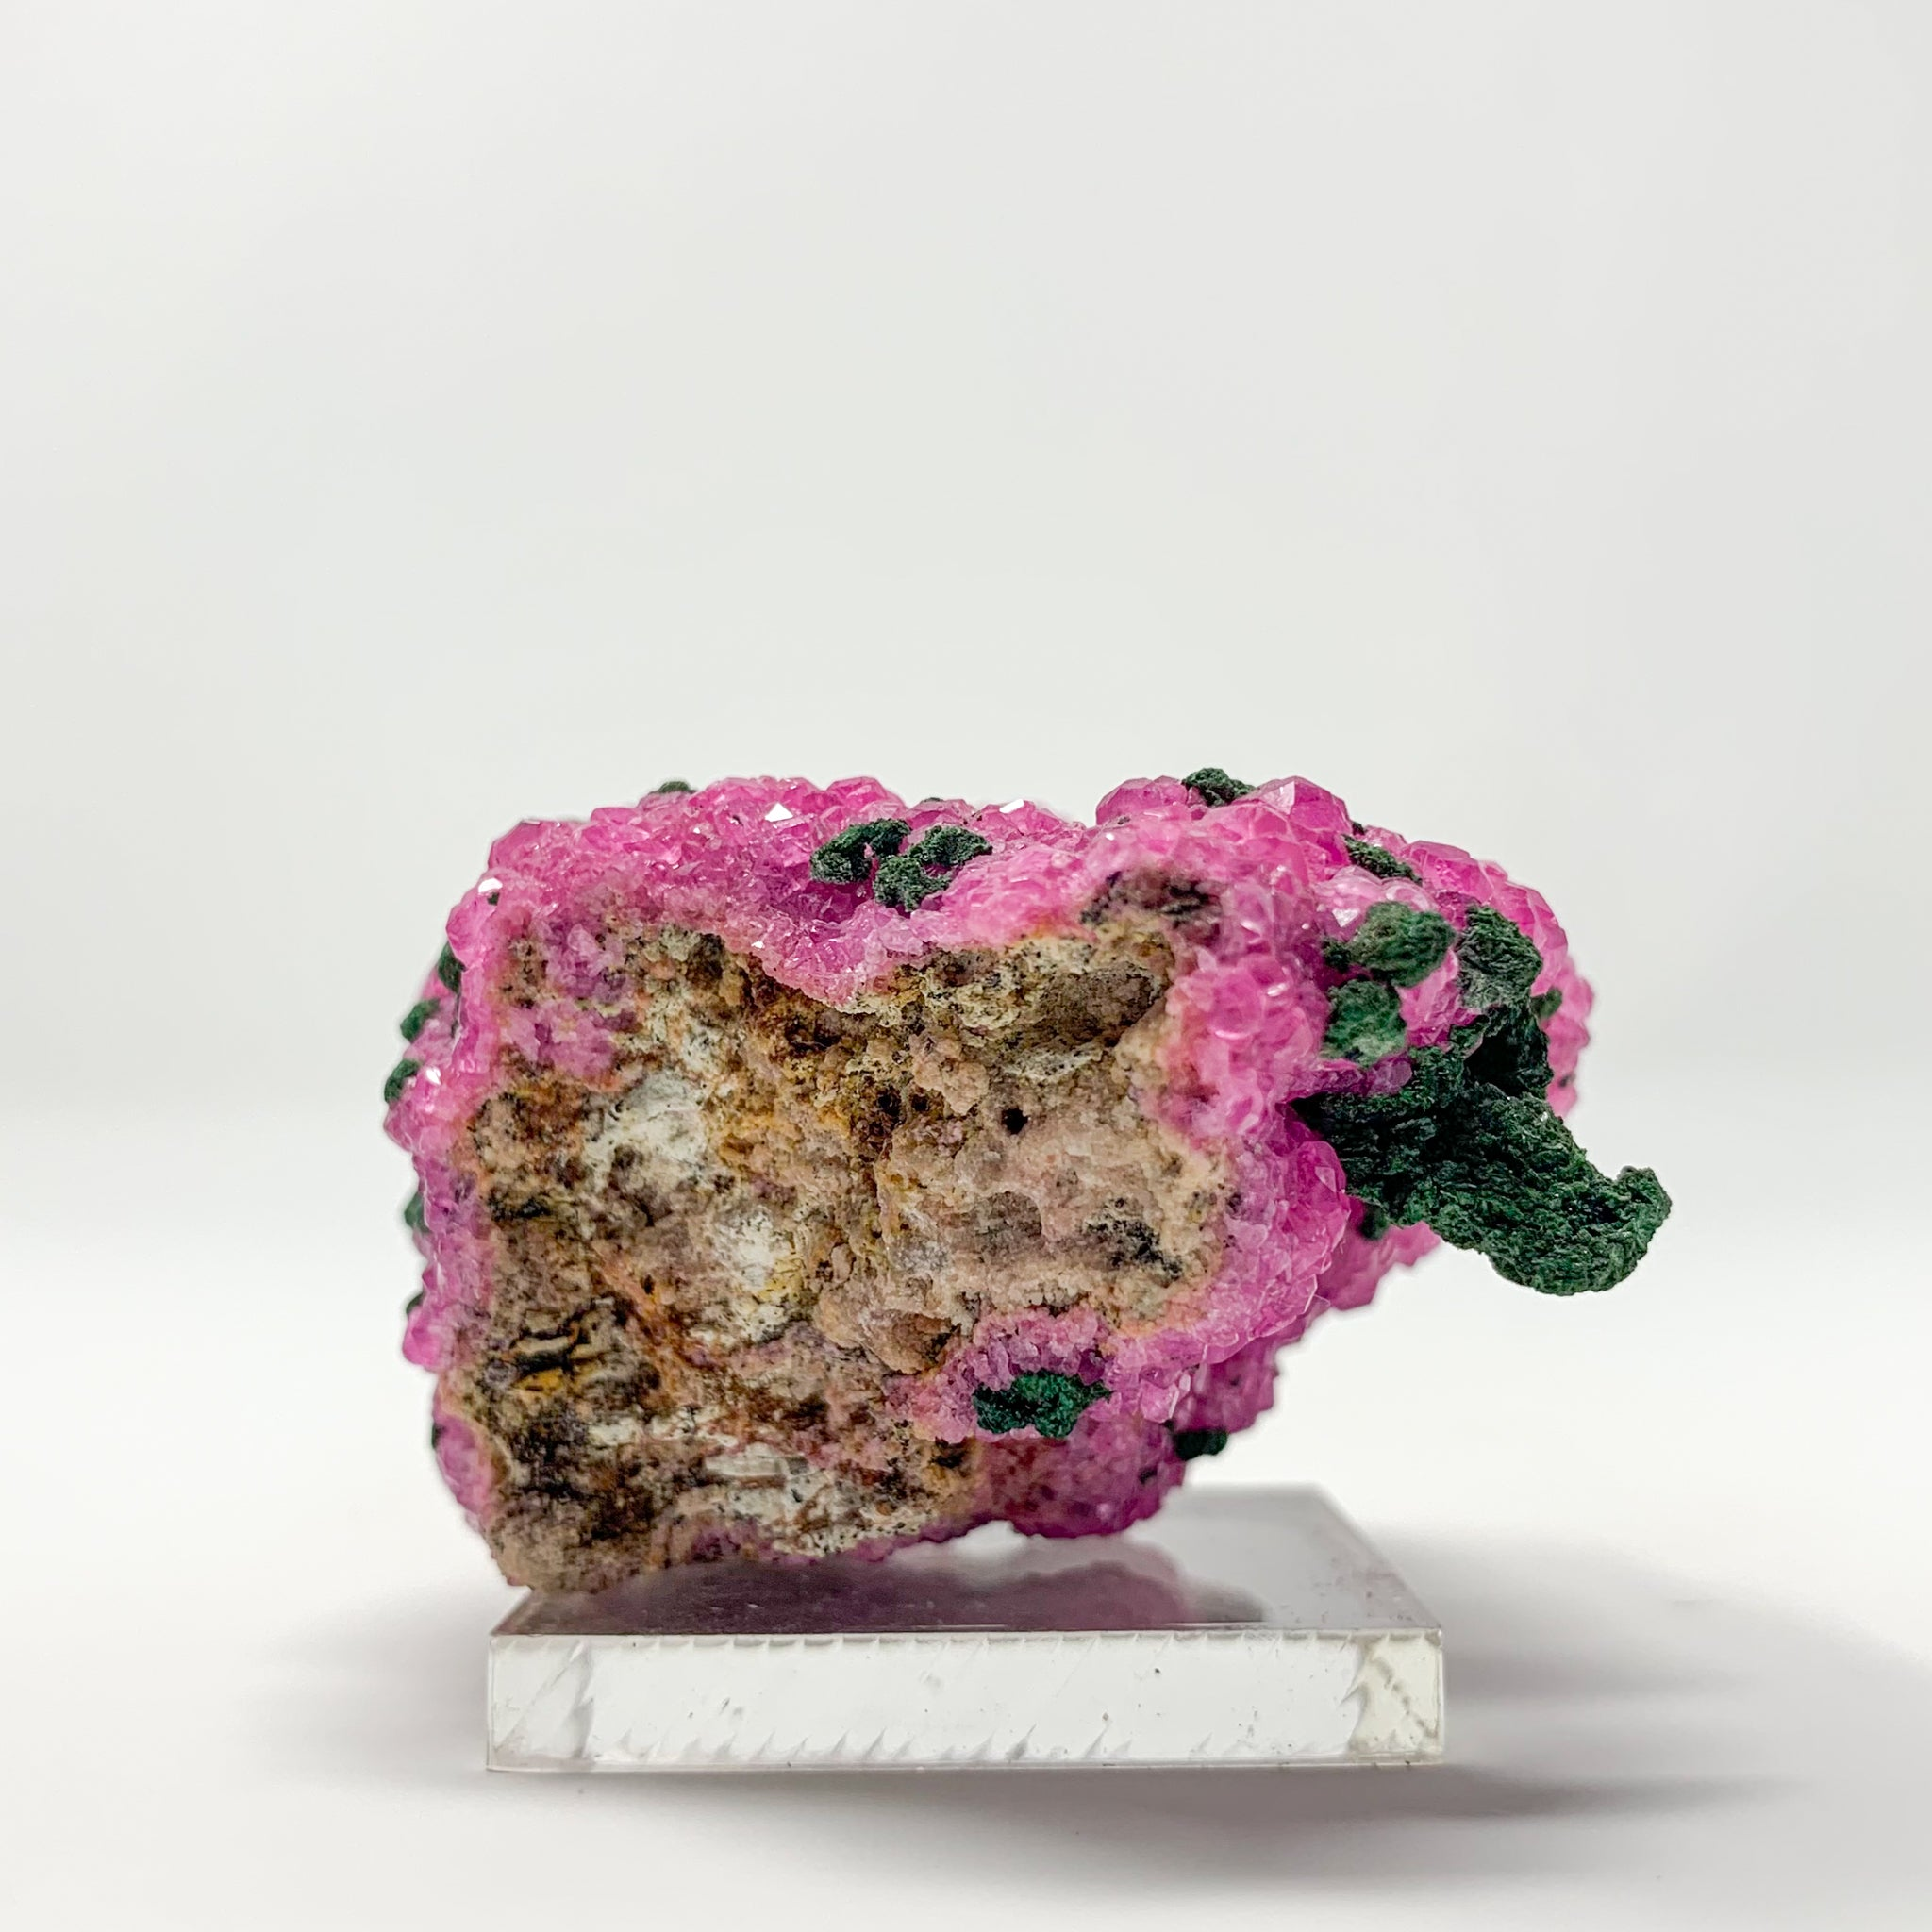 Malachite on Cobaltoan Calcite from the Democratic Republic of Congo